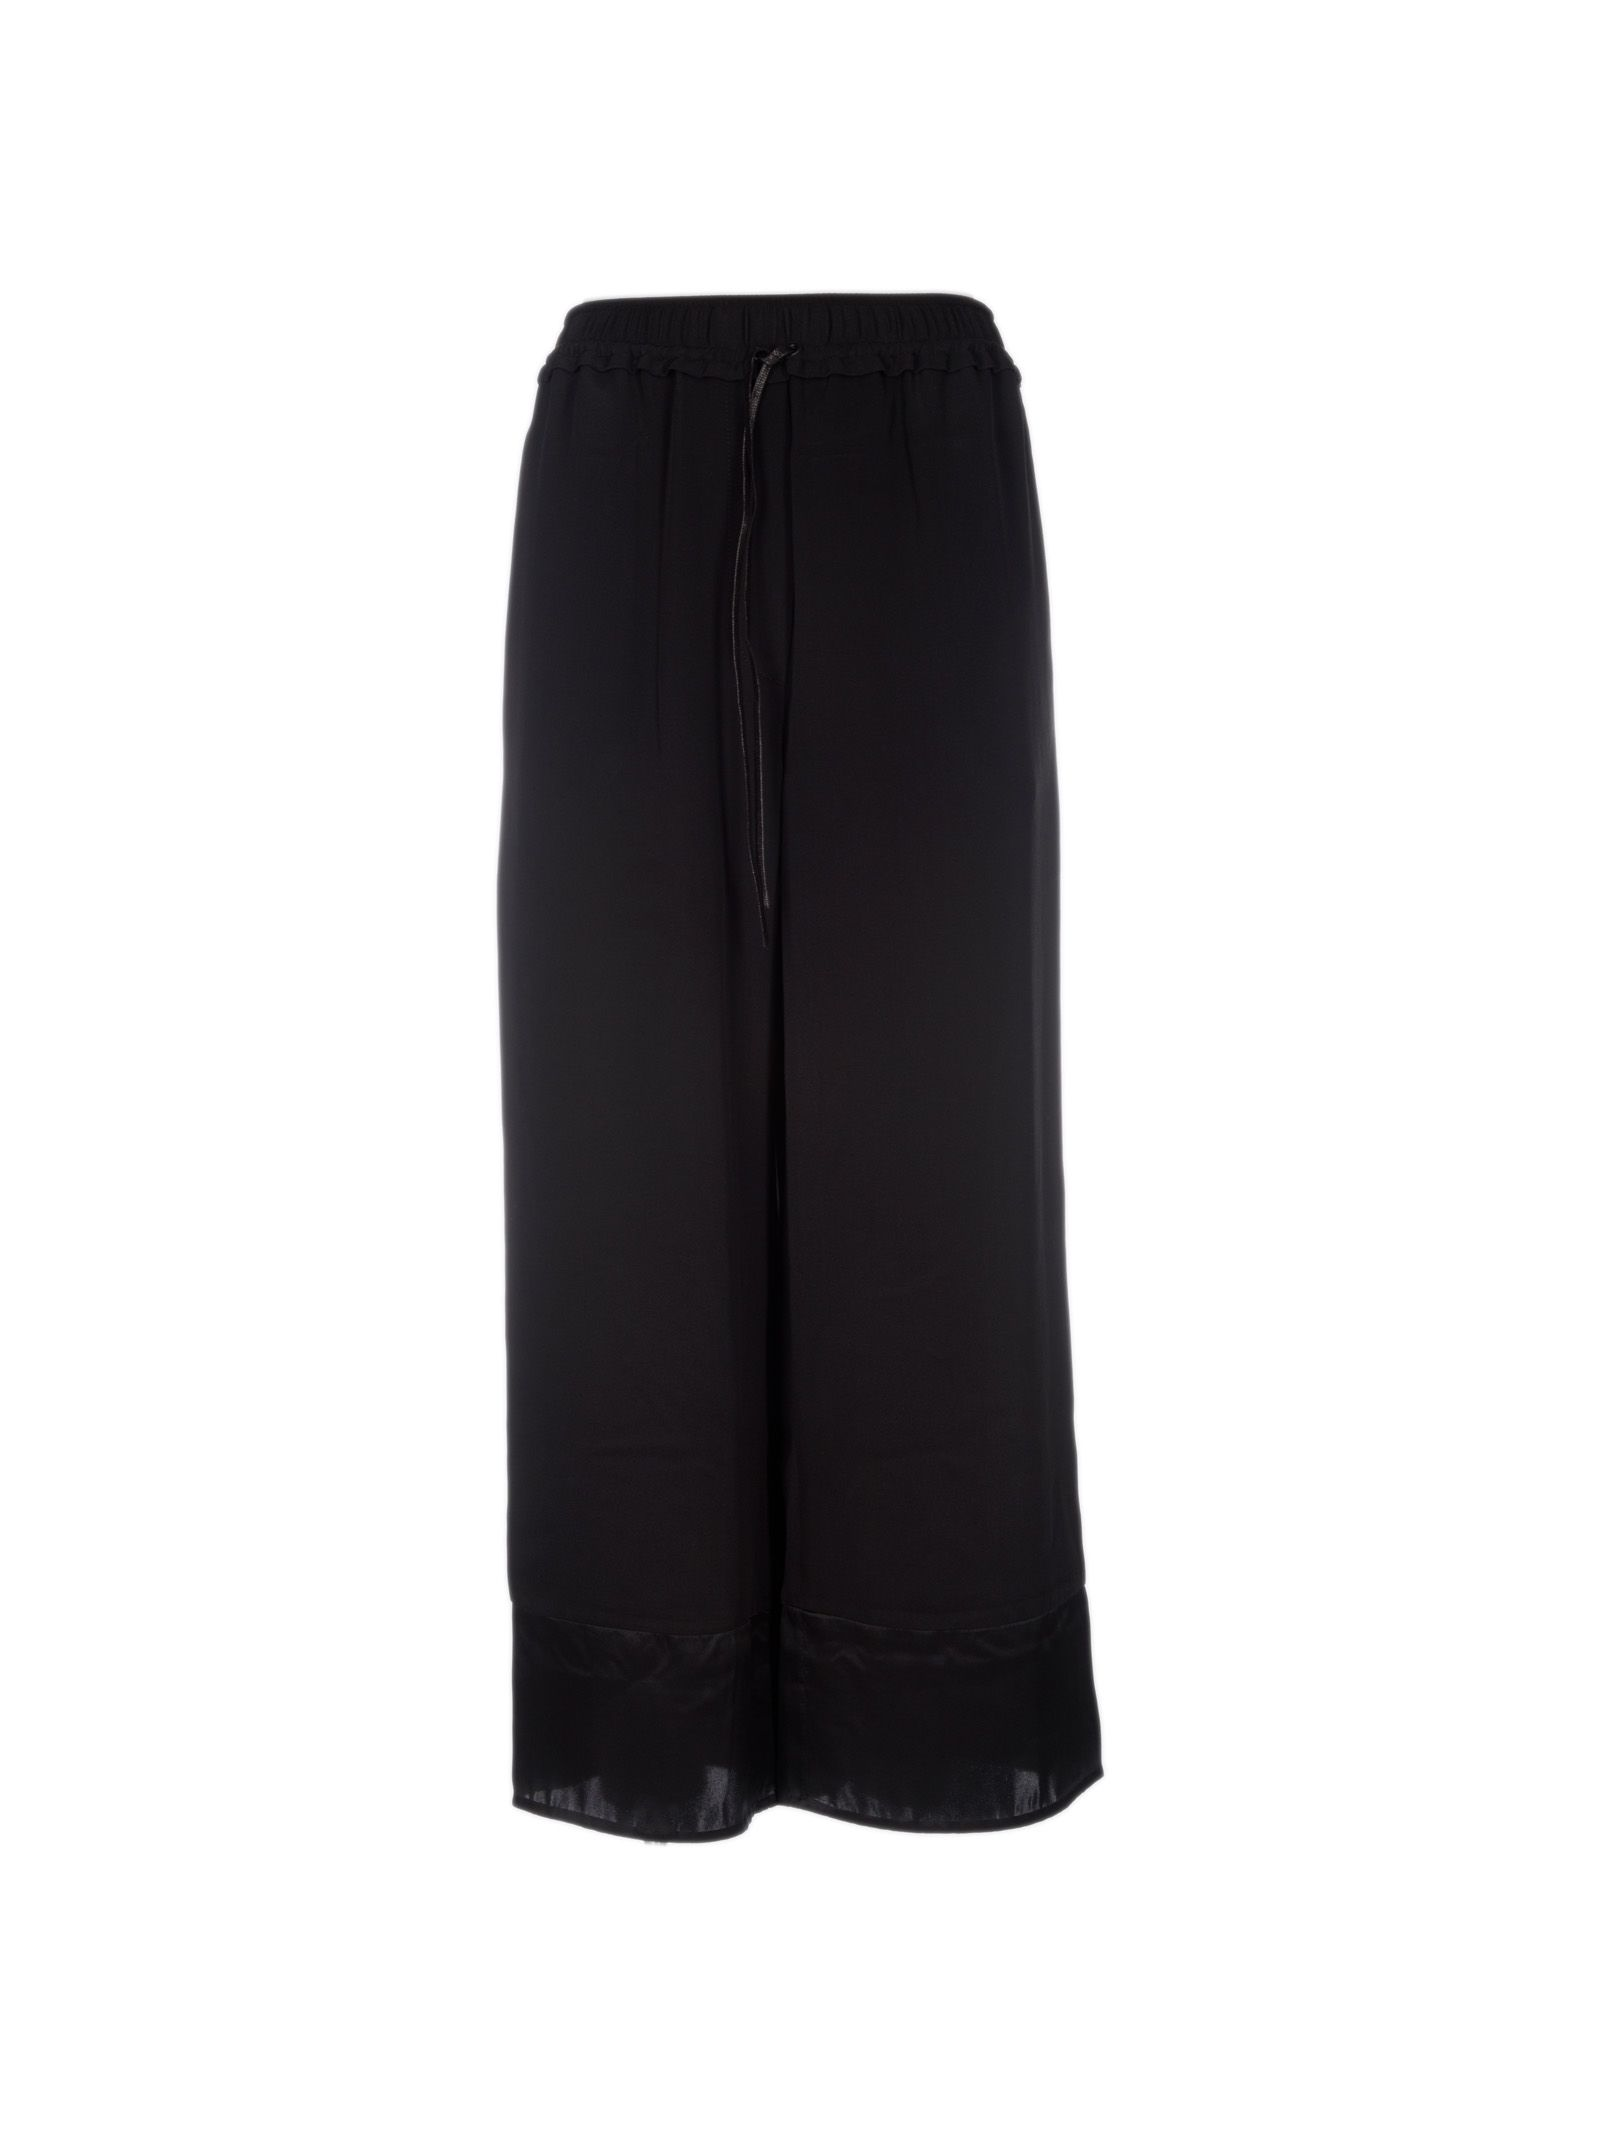 3.1 Phillip Lim Cropped Palazzo Trousers